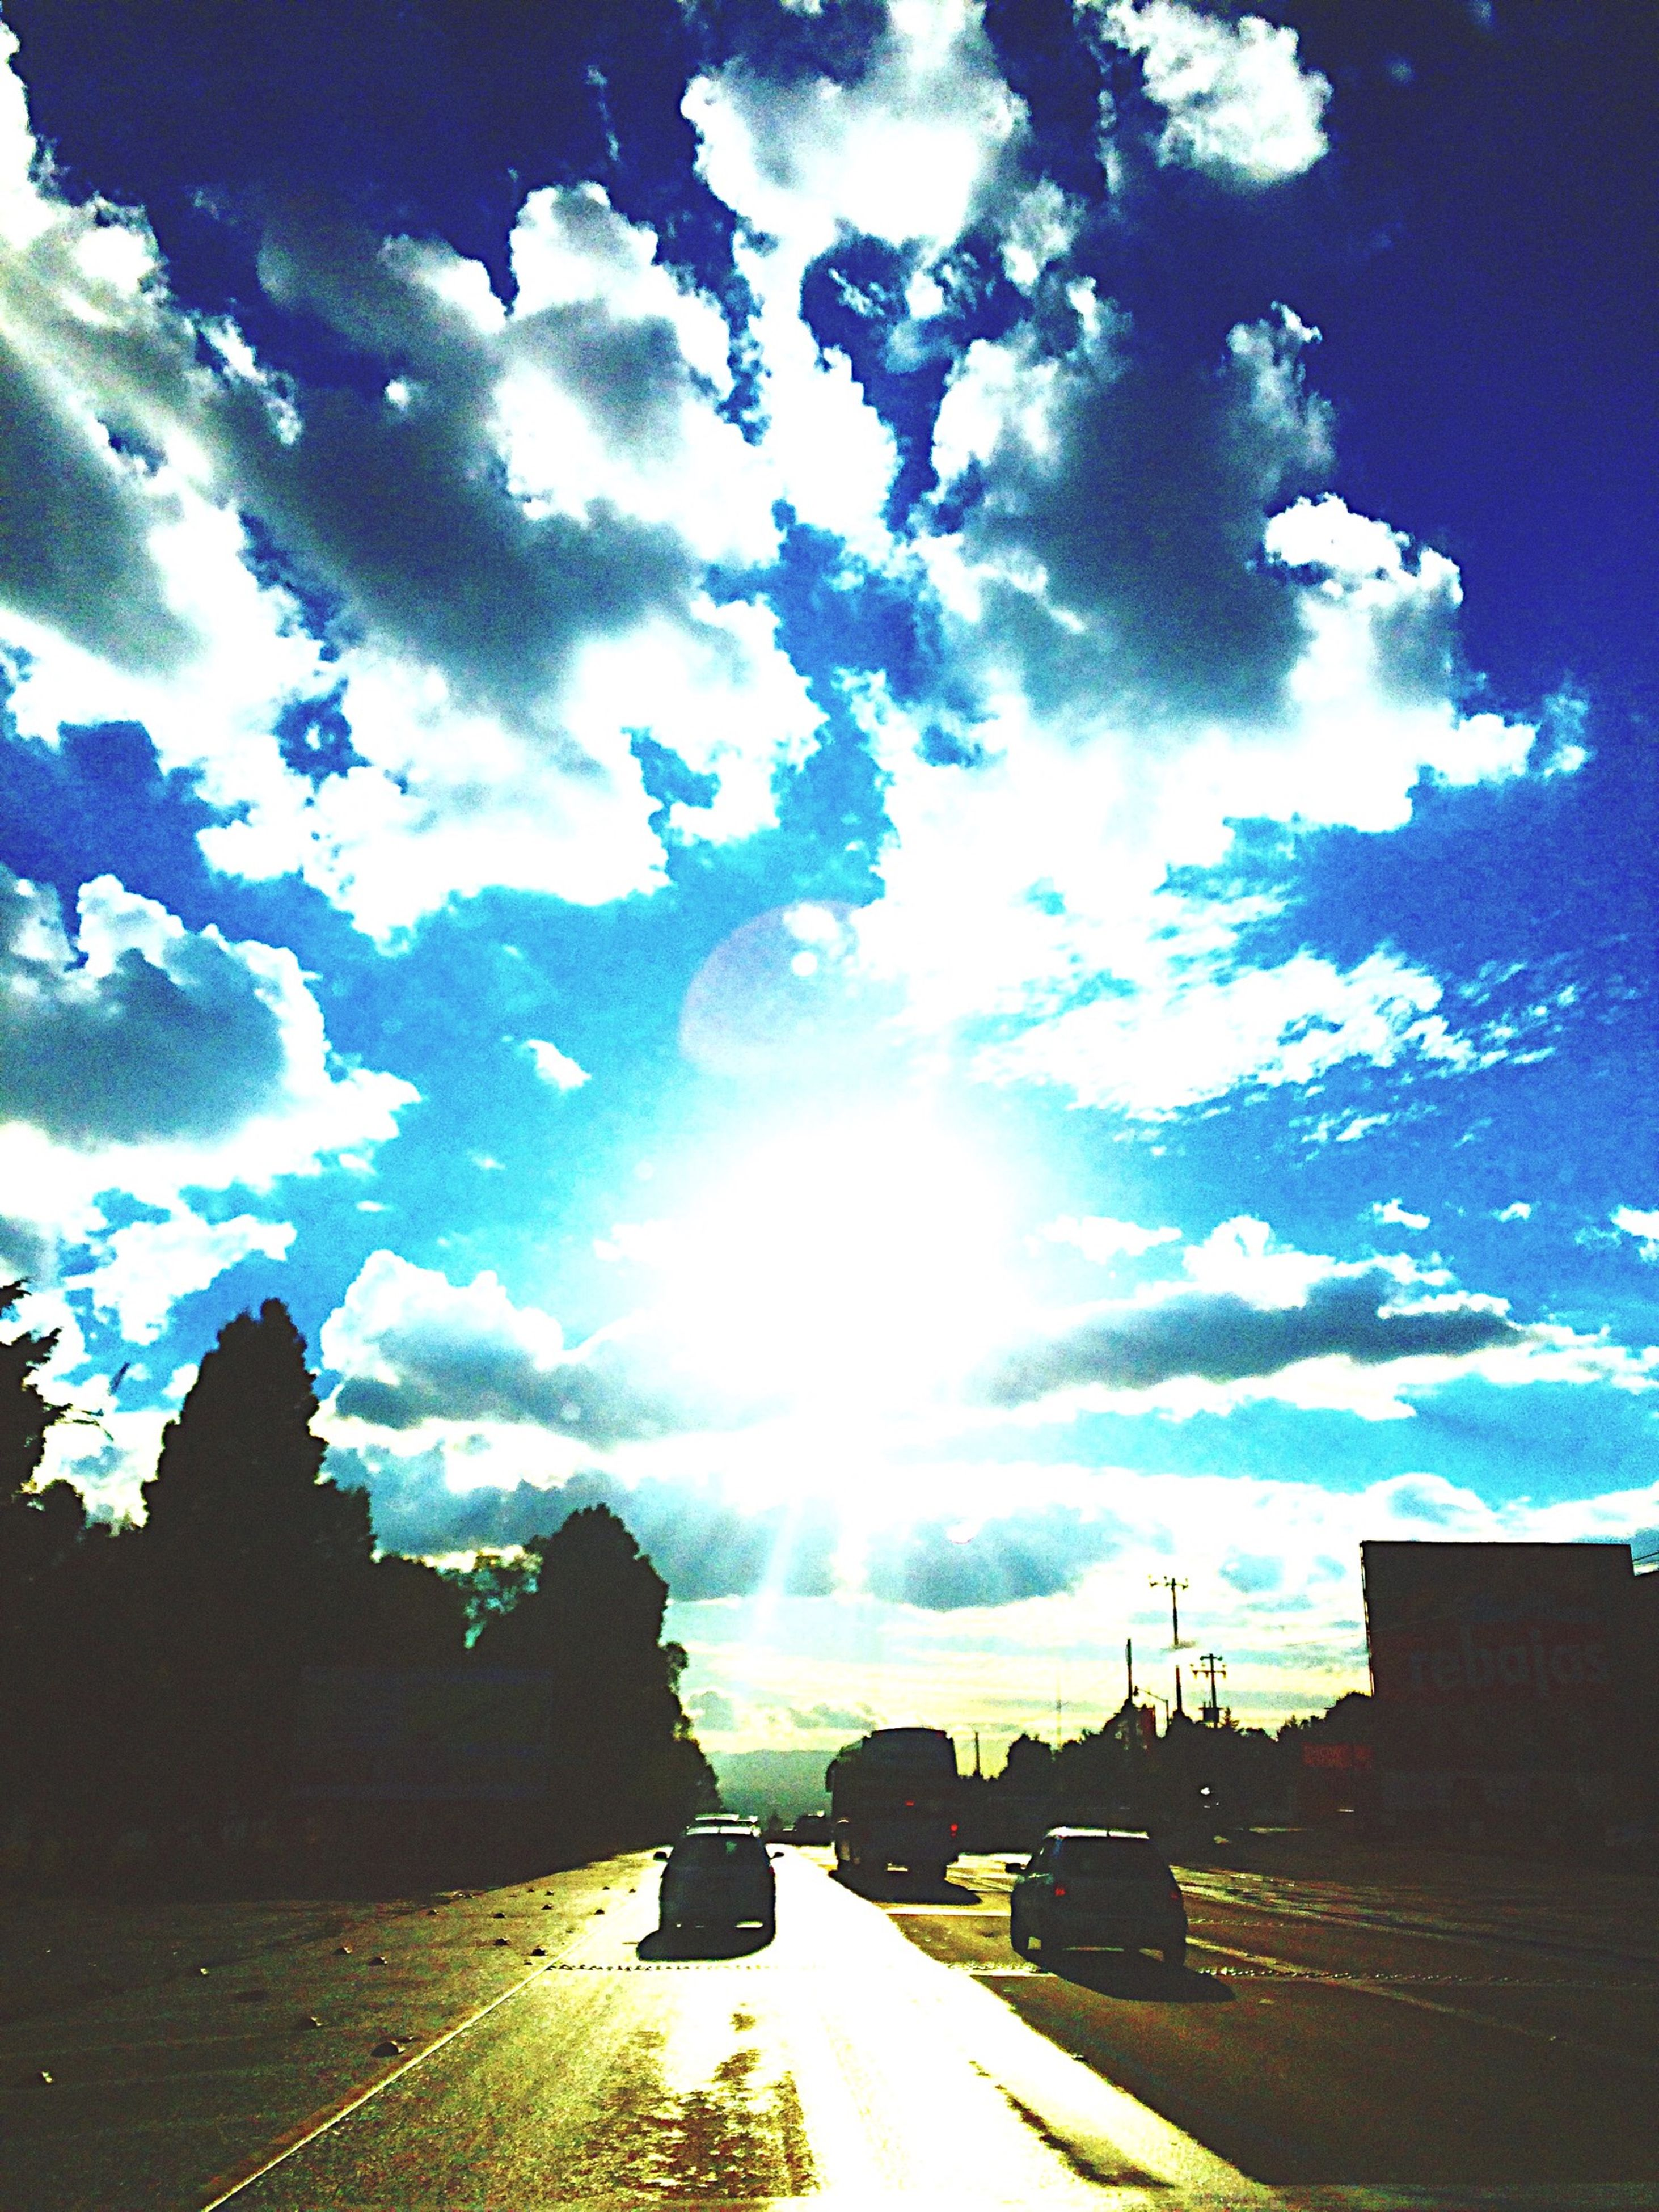 sky, cloud - sky, road, sun, transportation, car, sunlight, sunbeam, cloud, street, cloudy, nature, land vehicle, the way forward, lens flare, beauty in nature, scenics, outdoors, tranquility, blue